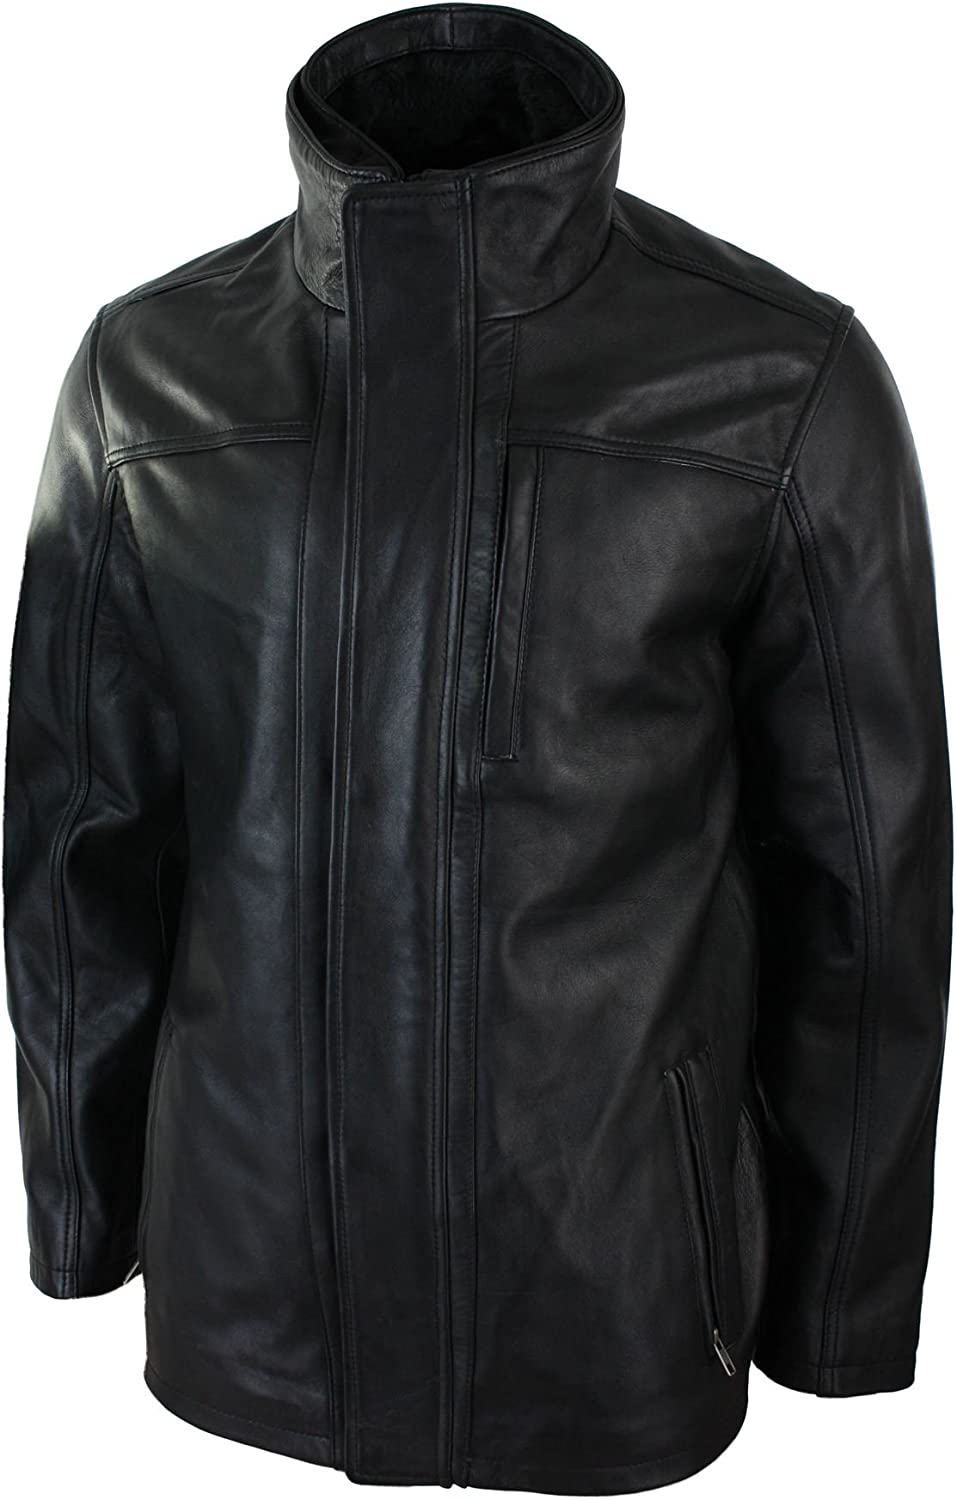 Infinity Mens 3//4 Real Leather Safari Jacket Overcoat Removable Double Zip Black Brown Brown s